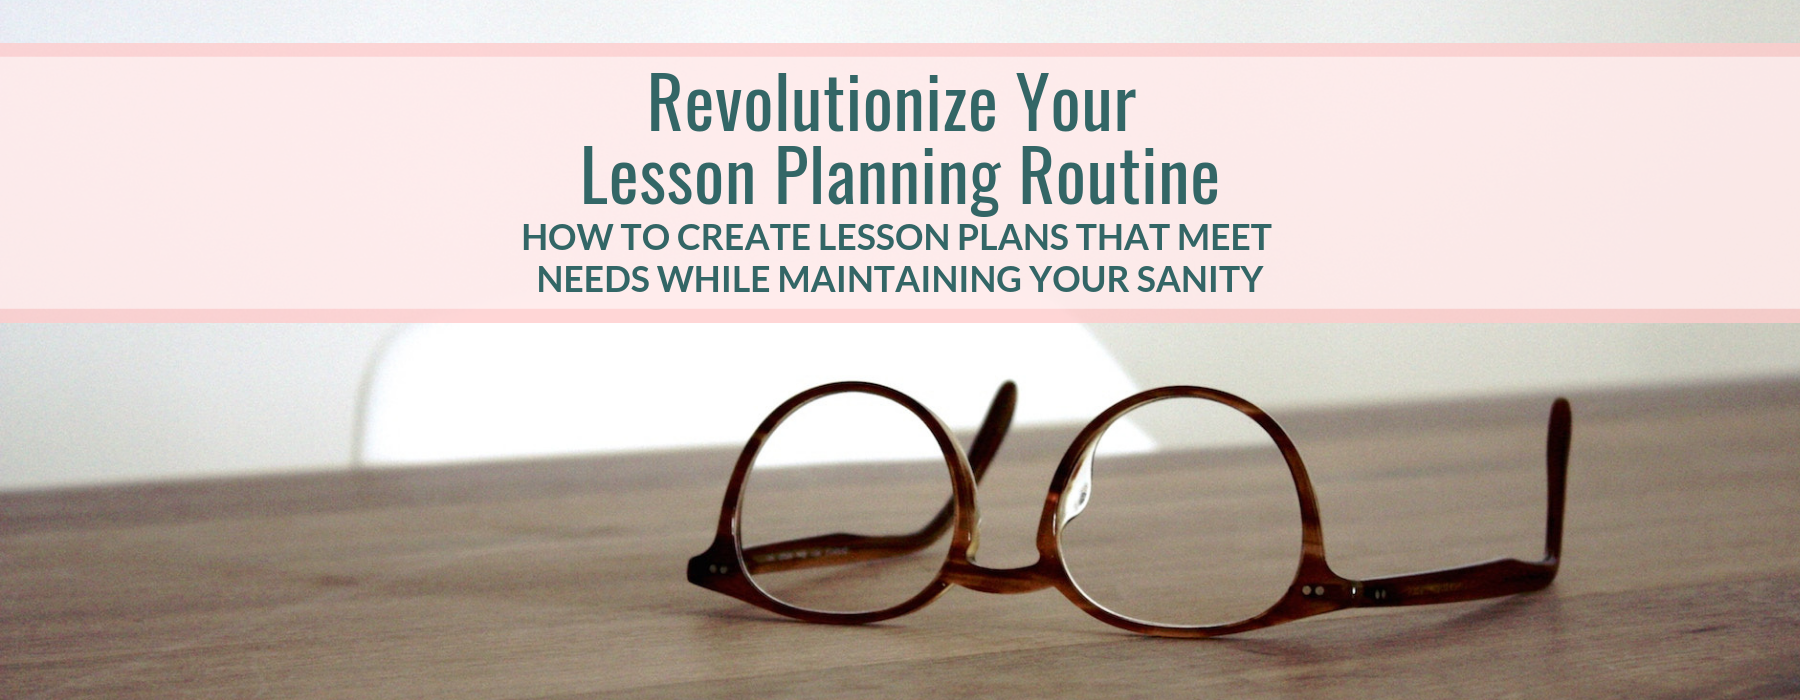 Revolutionize Your Lesson Planning Routine | Everyday ESL | ESL Lesson Plans | Teaching ESL | Adult ESL